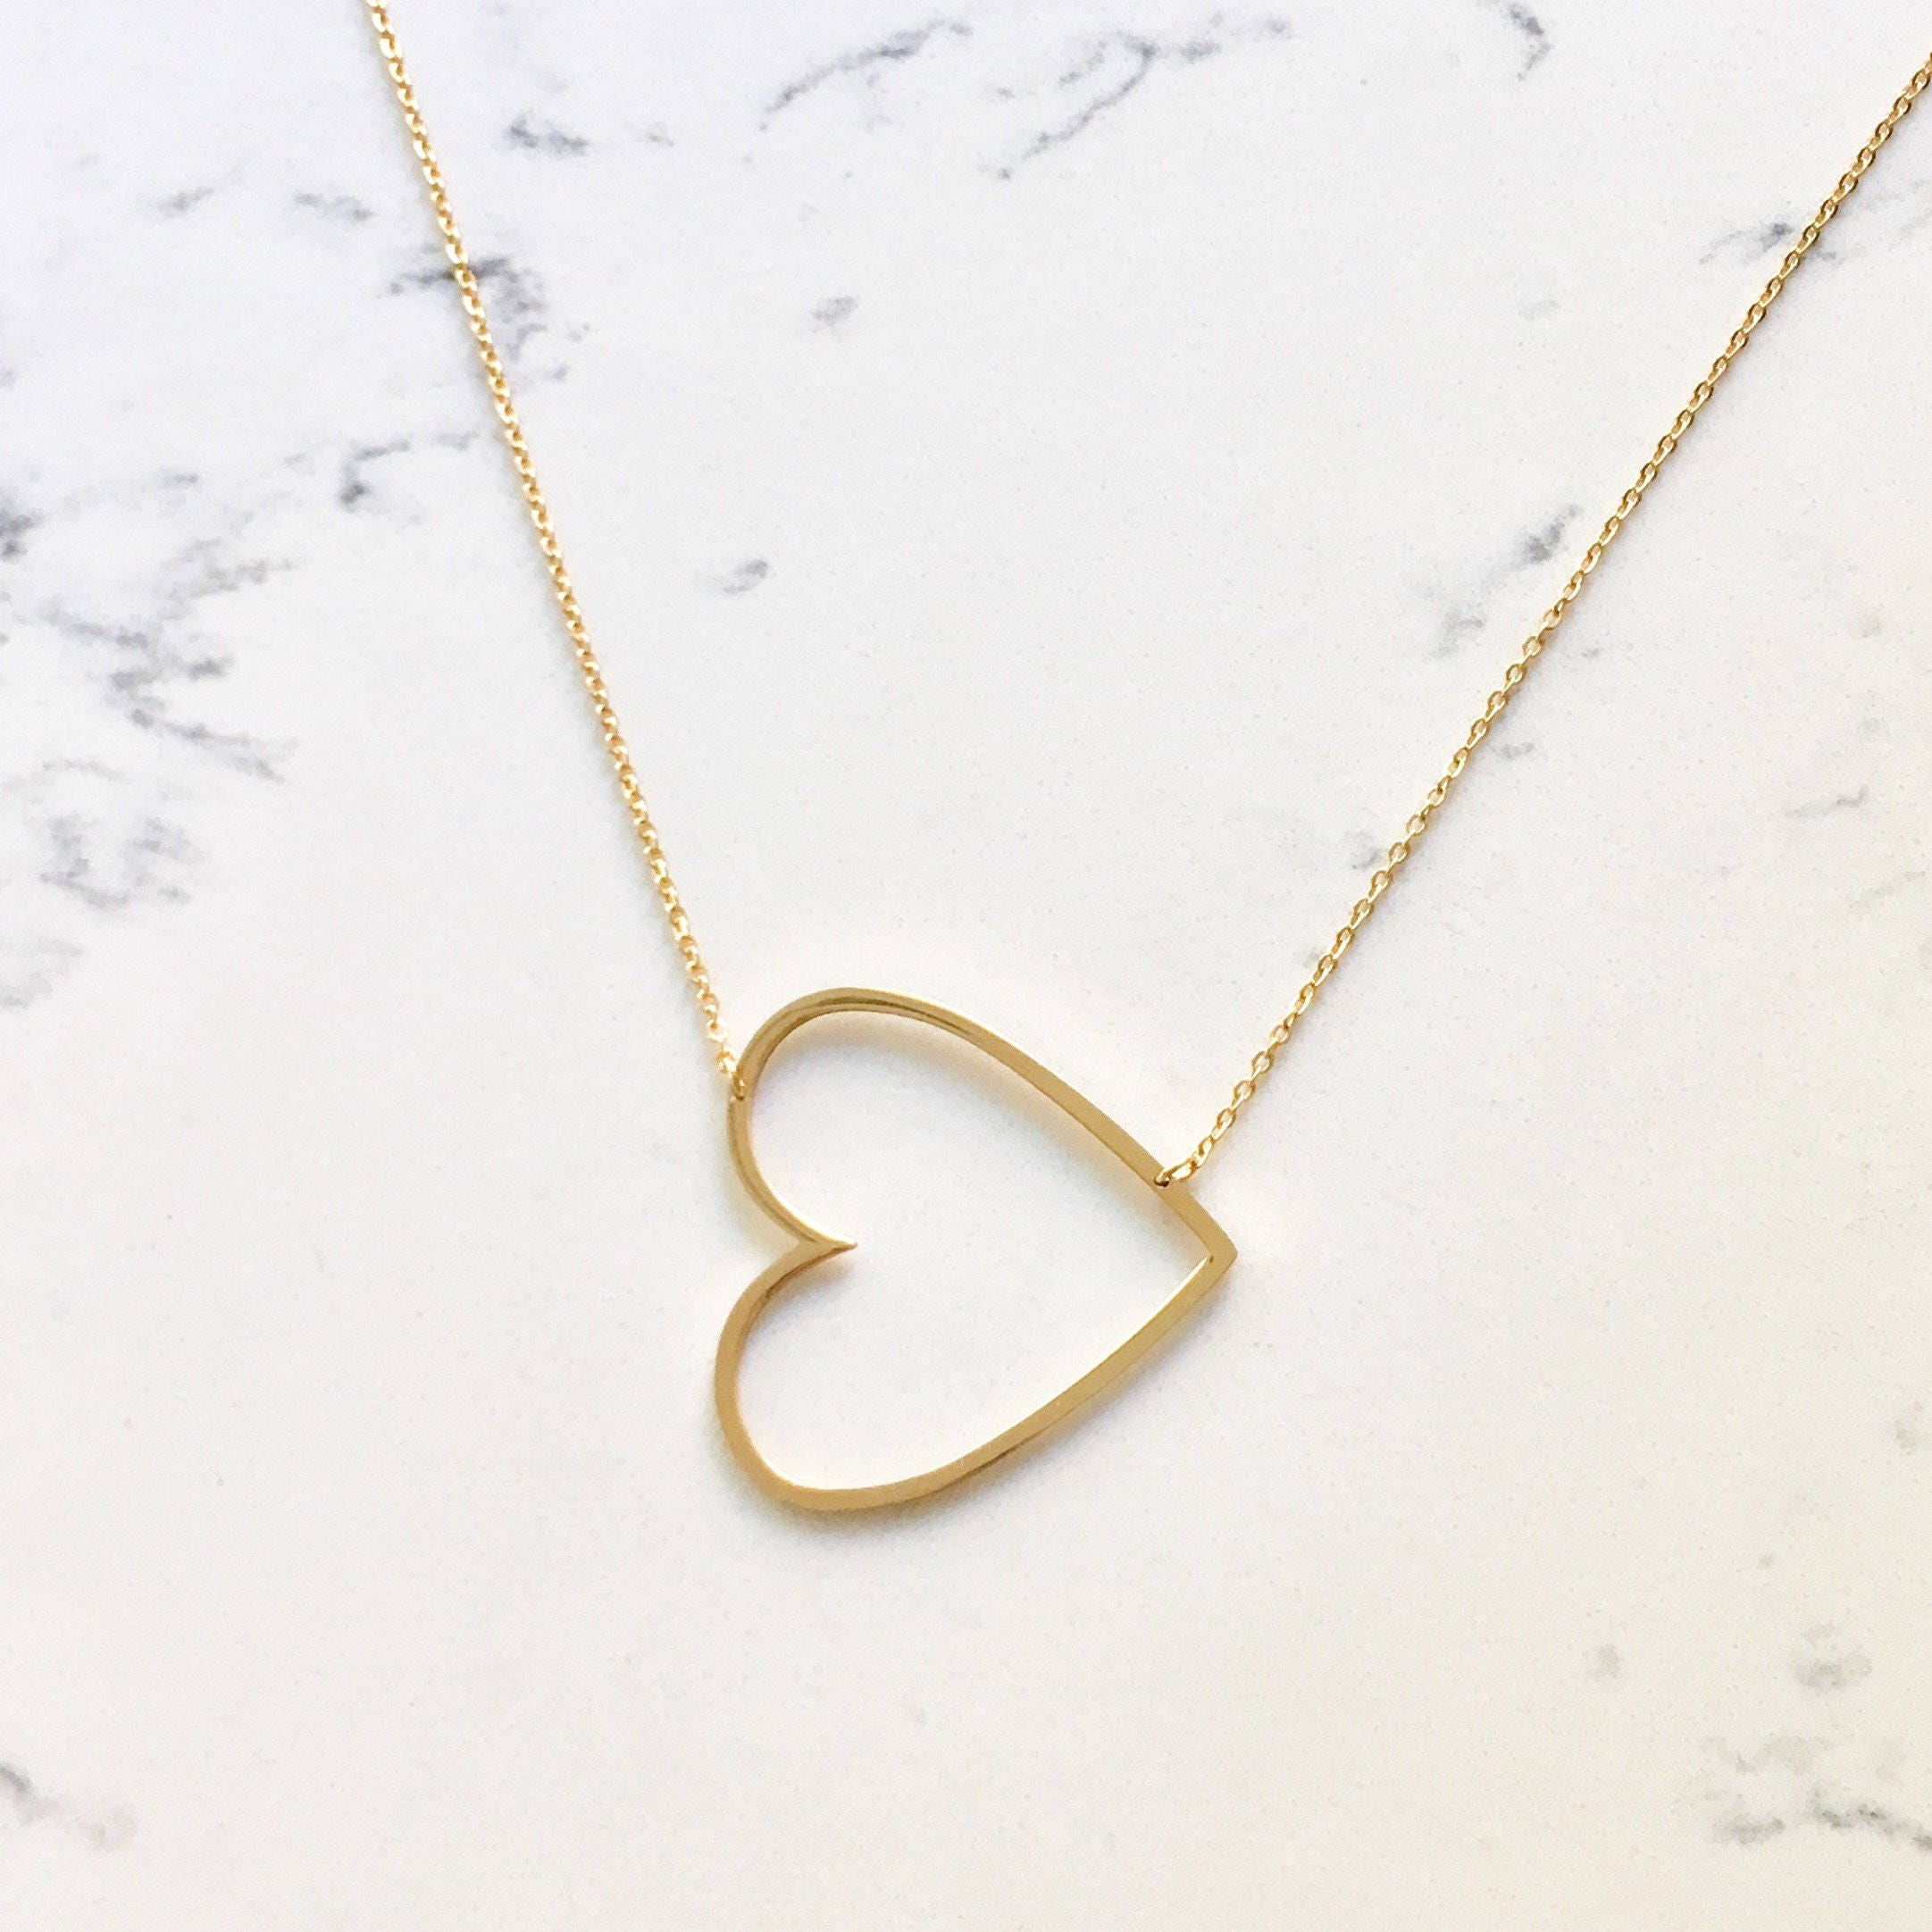 all initial heart jewellery necklace vana minthologie shop